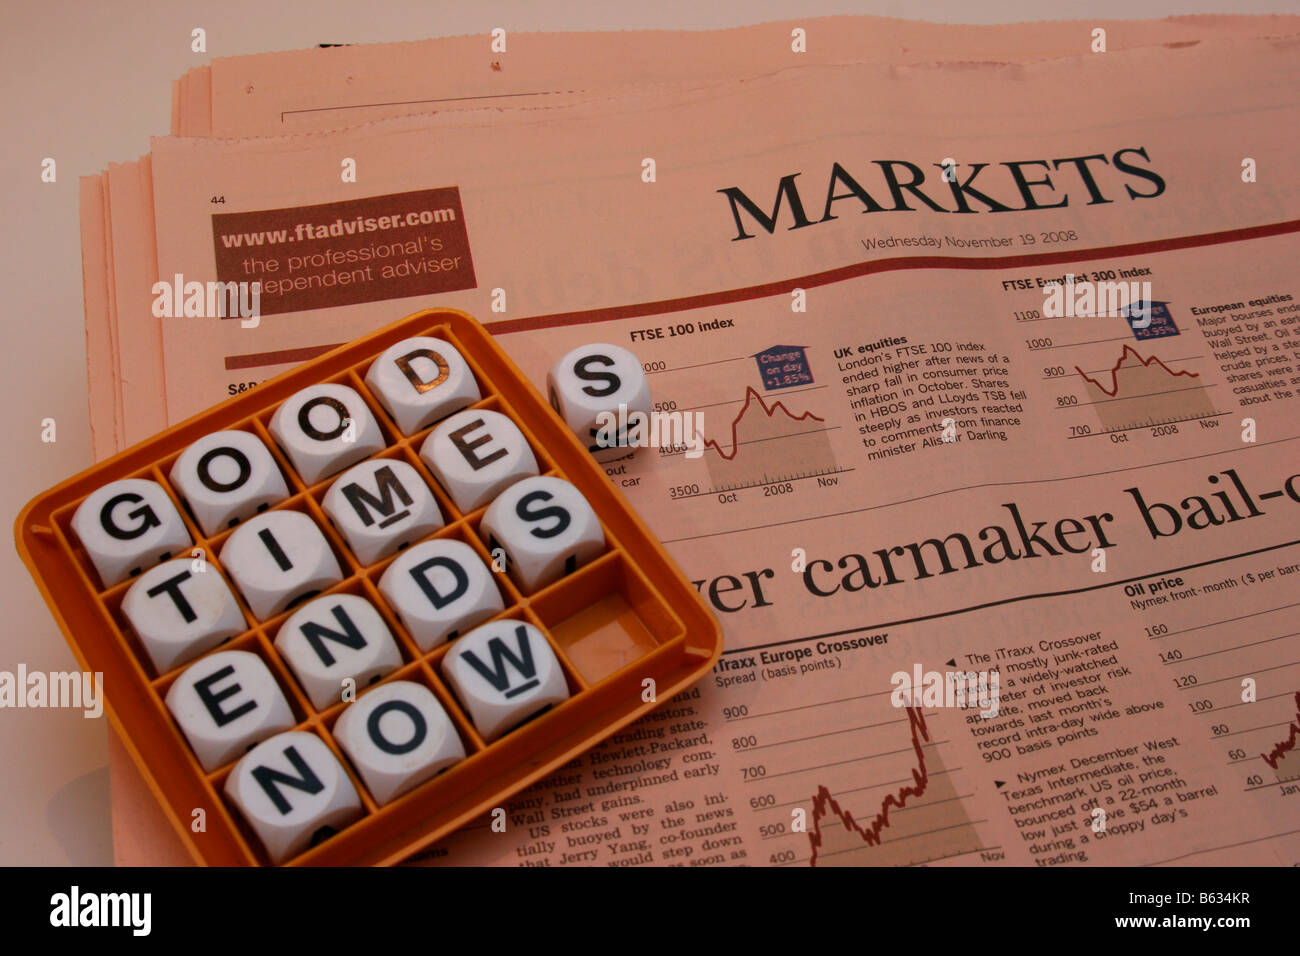 Game words arranged to state 'Good times ends now' on the markets page of the Financial Times news paper - Stock Image